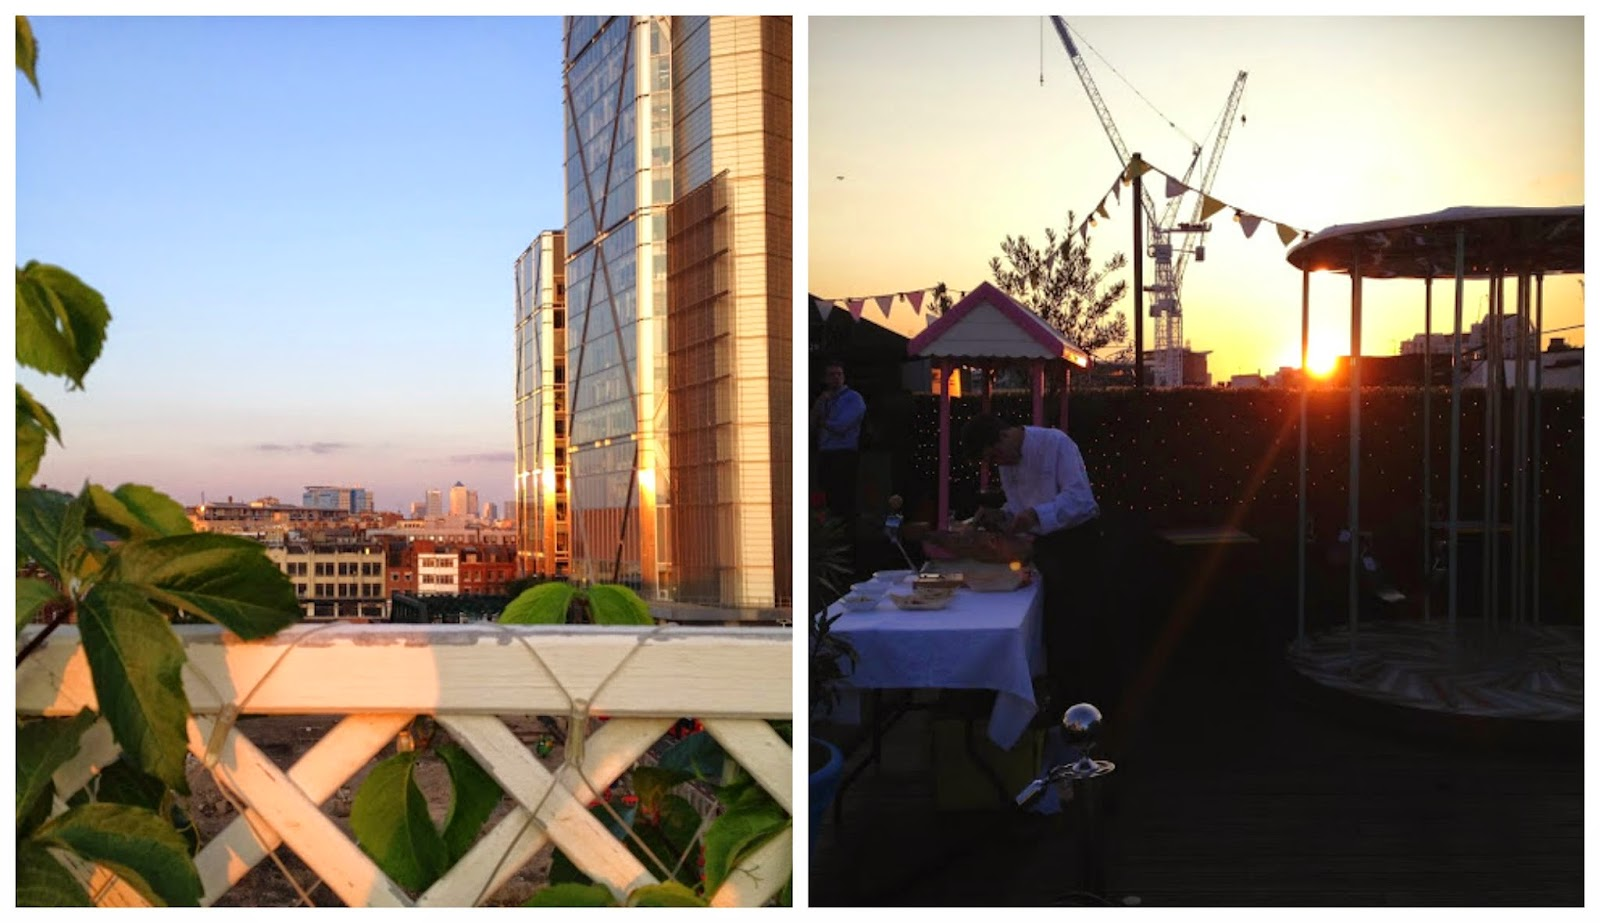 The sunset from the rooftop at the Queen of Hoxton